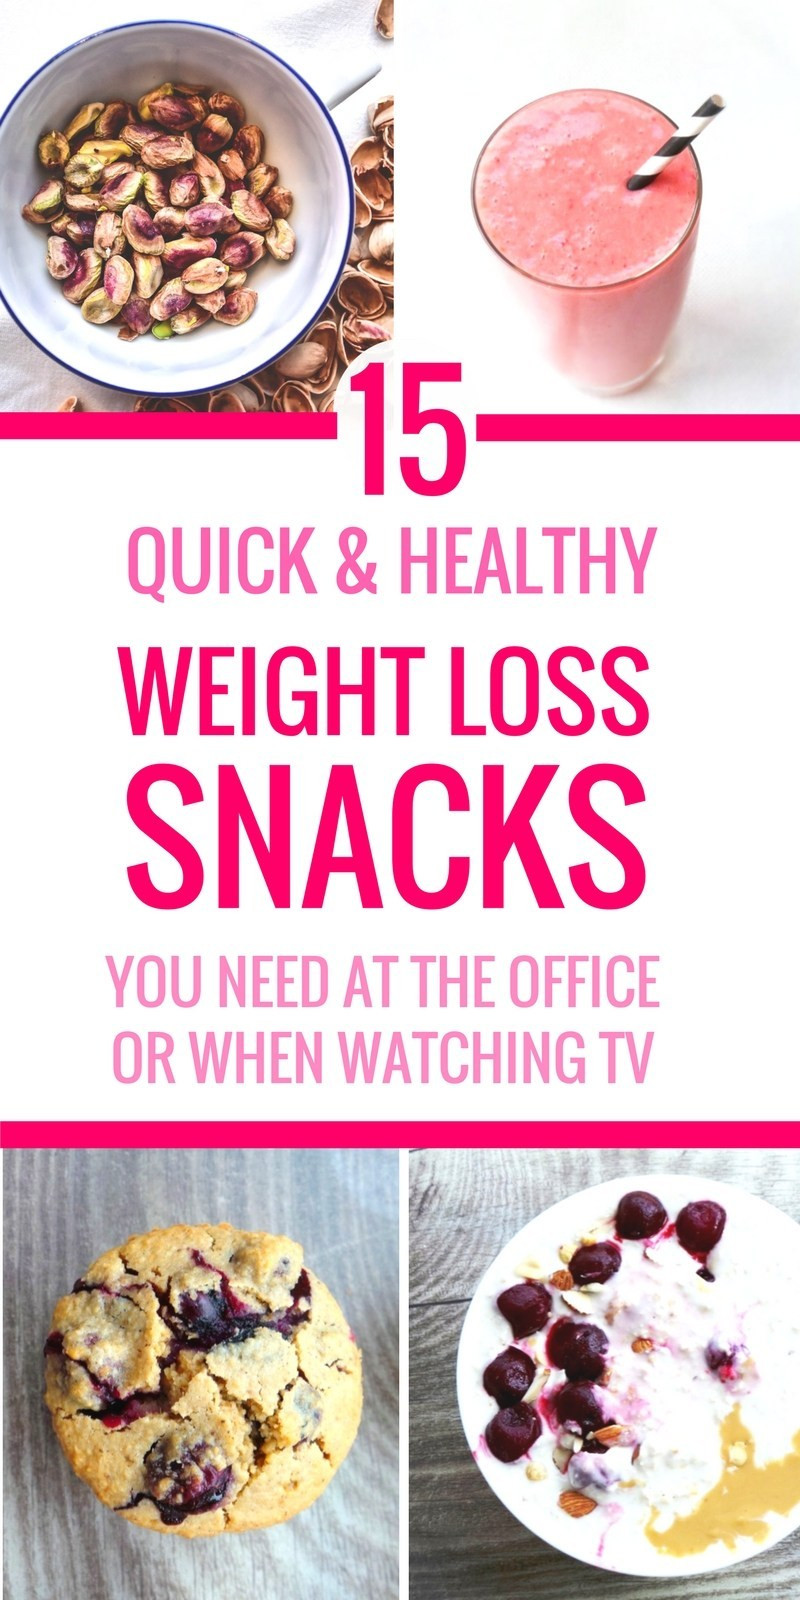 Easy Healthy Snacks On The Go  Easy Healthy Snacks The Go At Work or Watching TV